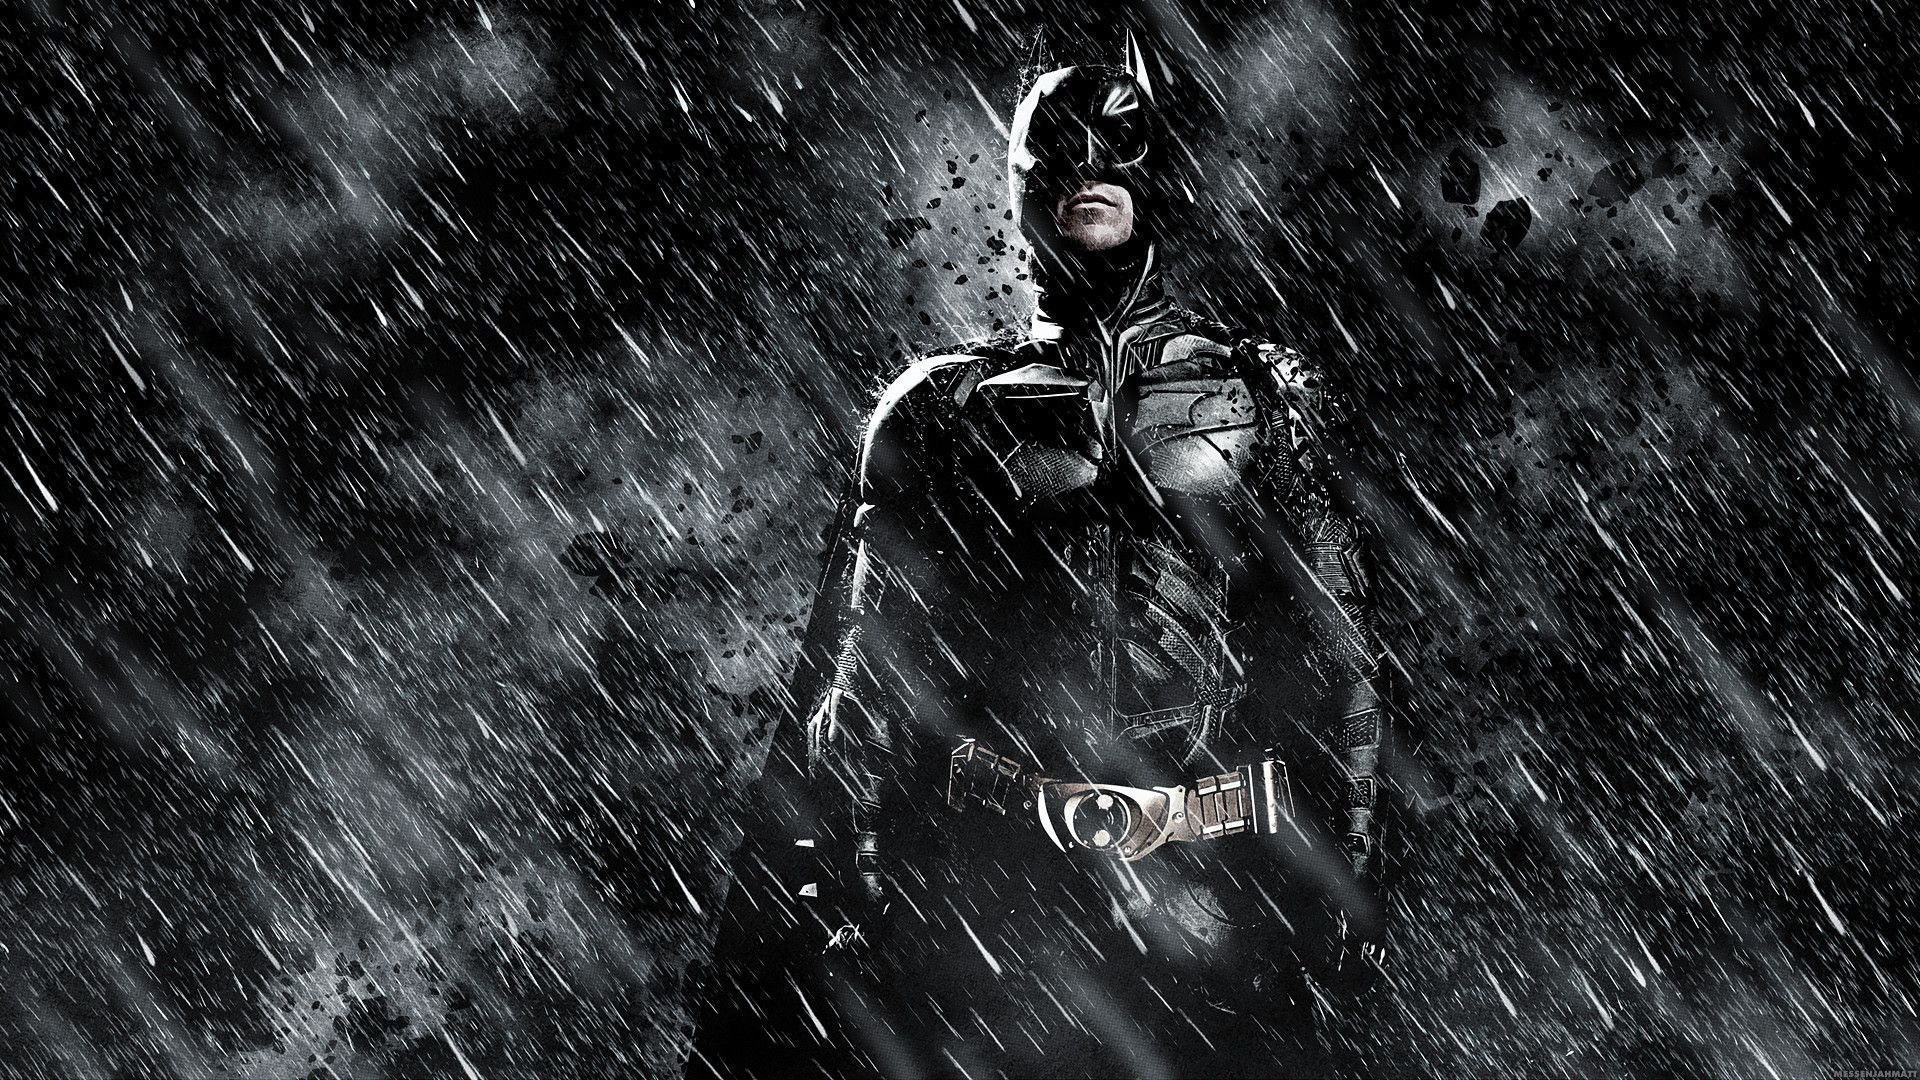 The Dark Knight Rises Wallpapers HD 1920x1080 - Wallpaper